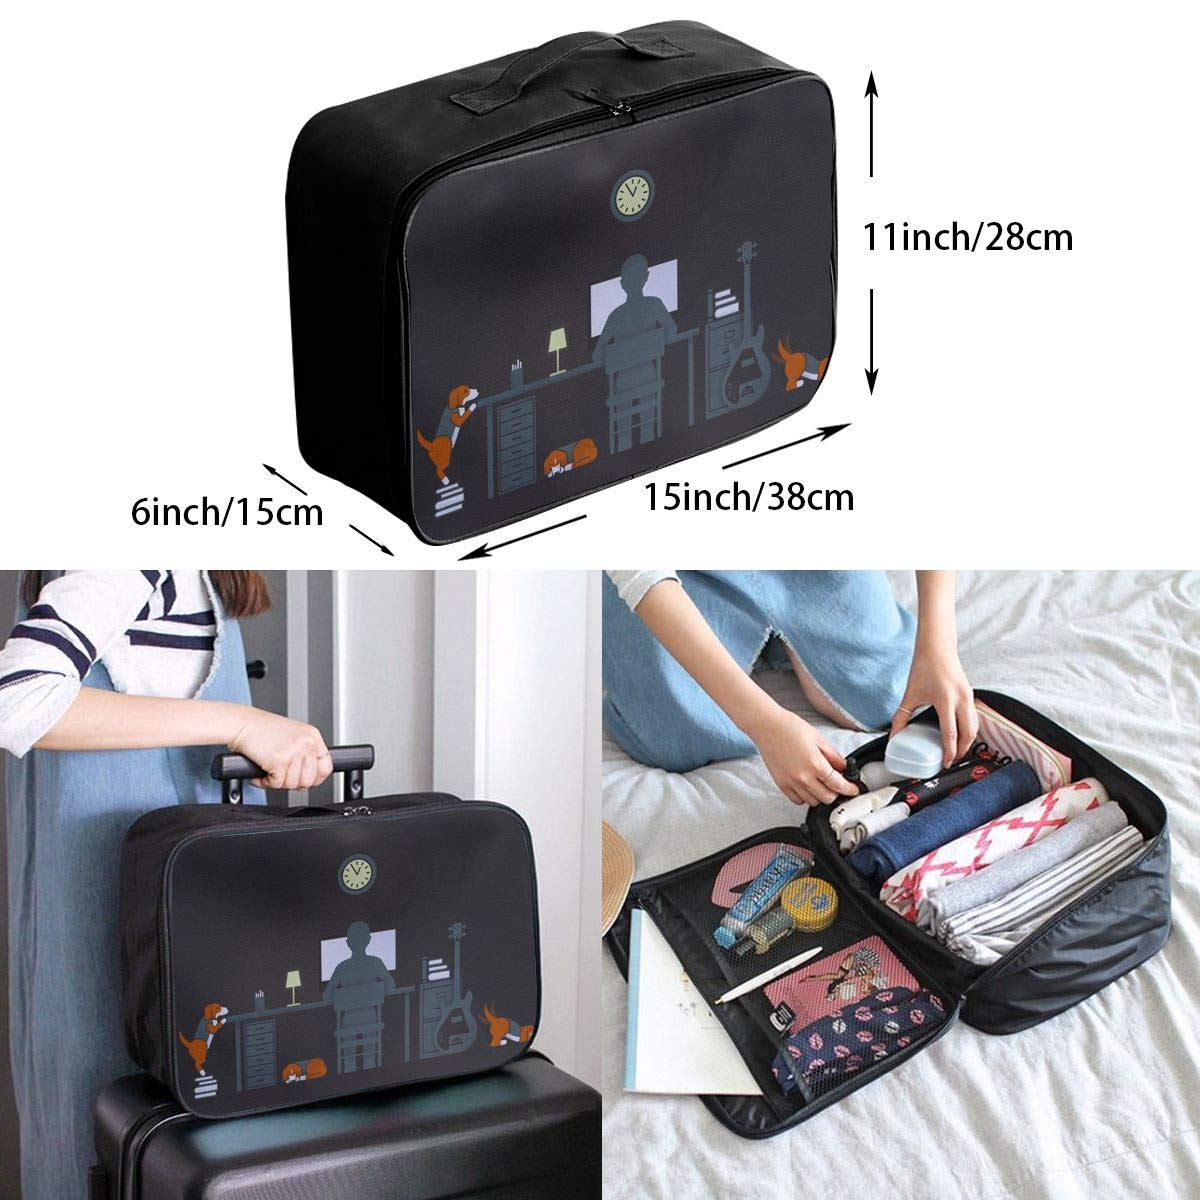 Travel Luggage Duffle Bag Lightweight Portable Handbag Student Life Dog Large Capacity Waterproof Foldable Storage Tote